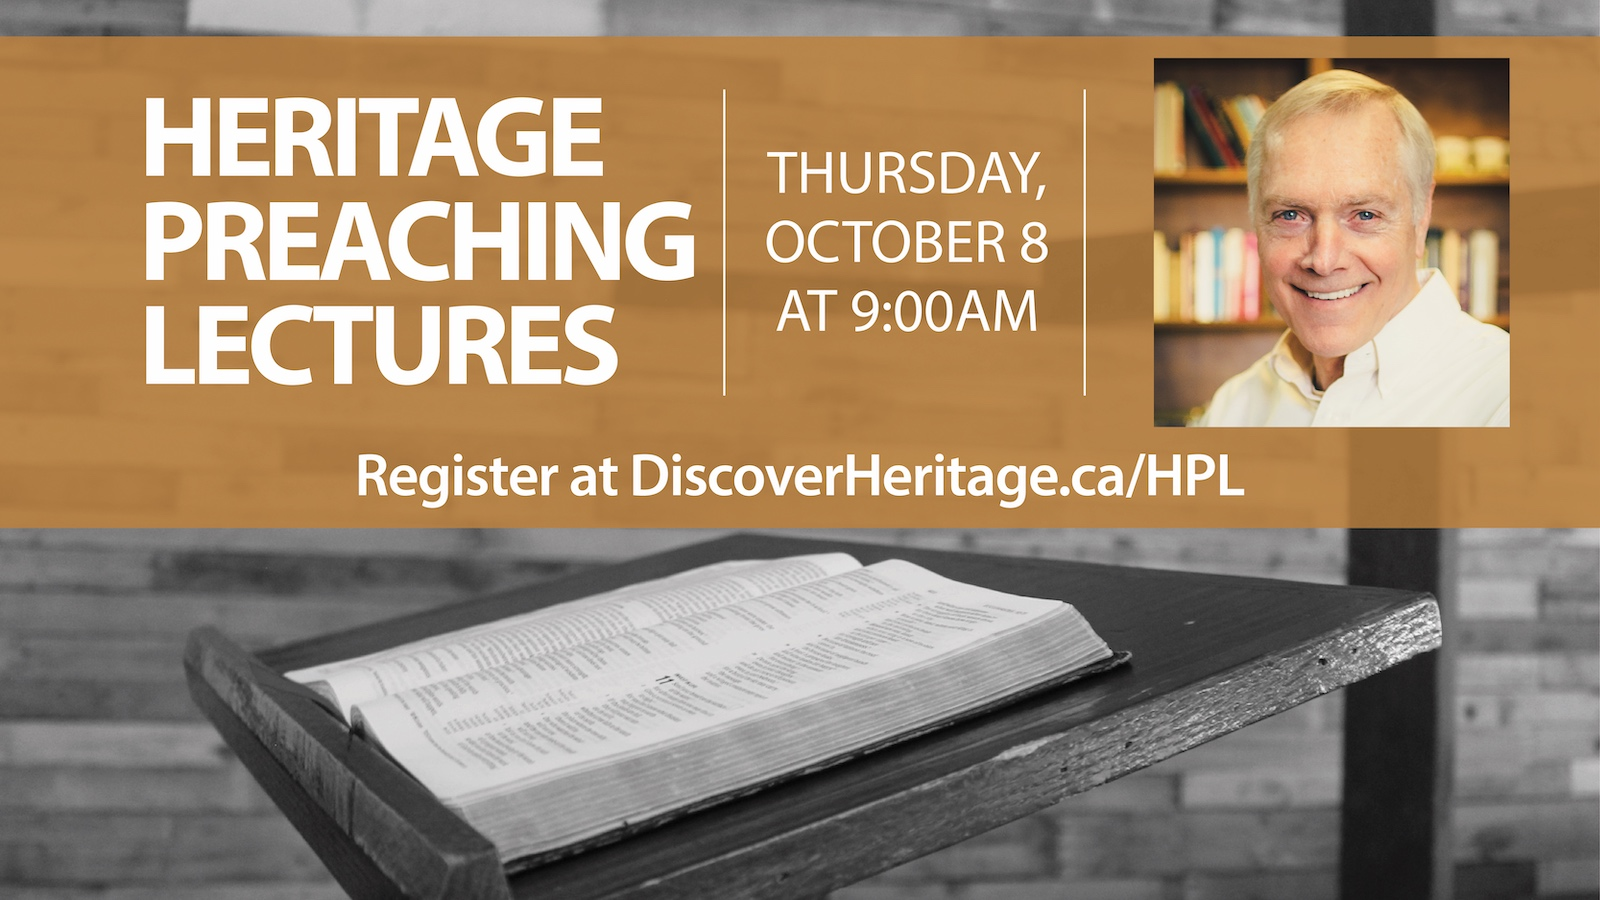 Heritage Preaching Lectures 2020 Welcomes Ray Ortlund